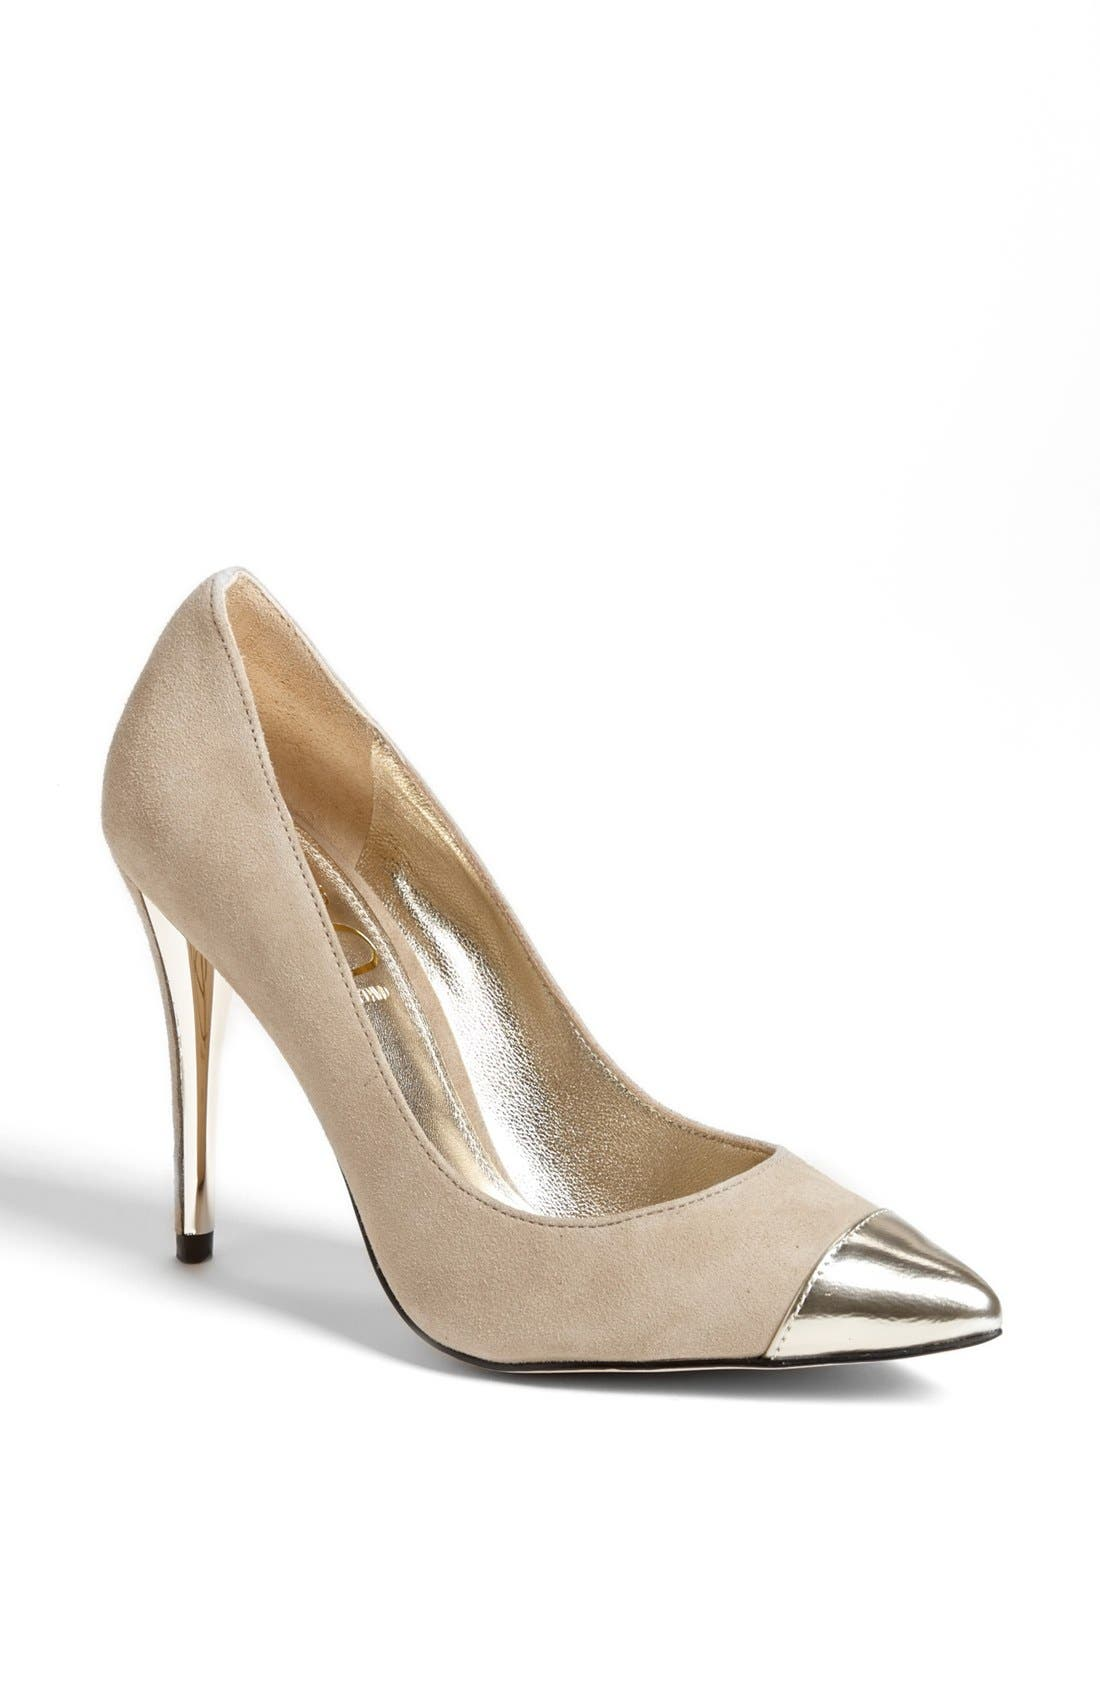 Main Image - Joan & David 'Amoree' Pump (Online Only)